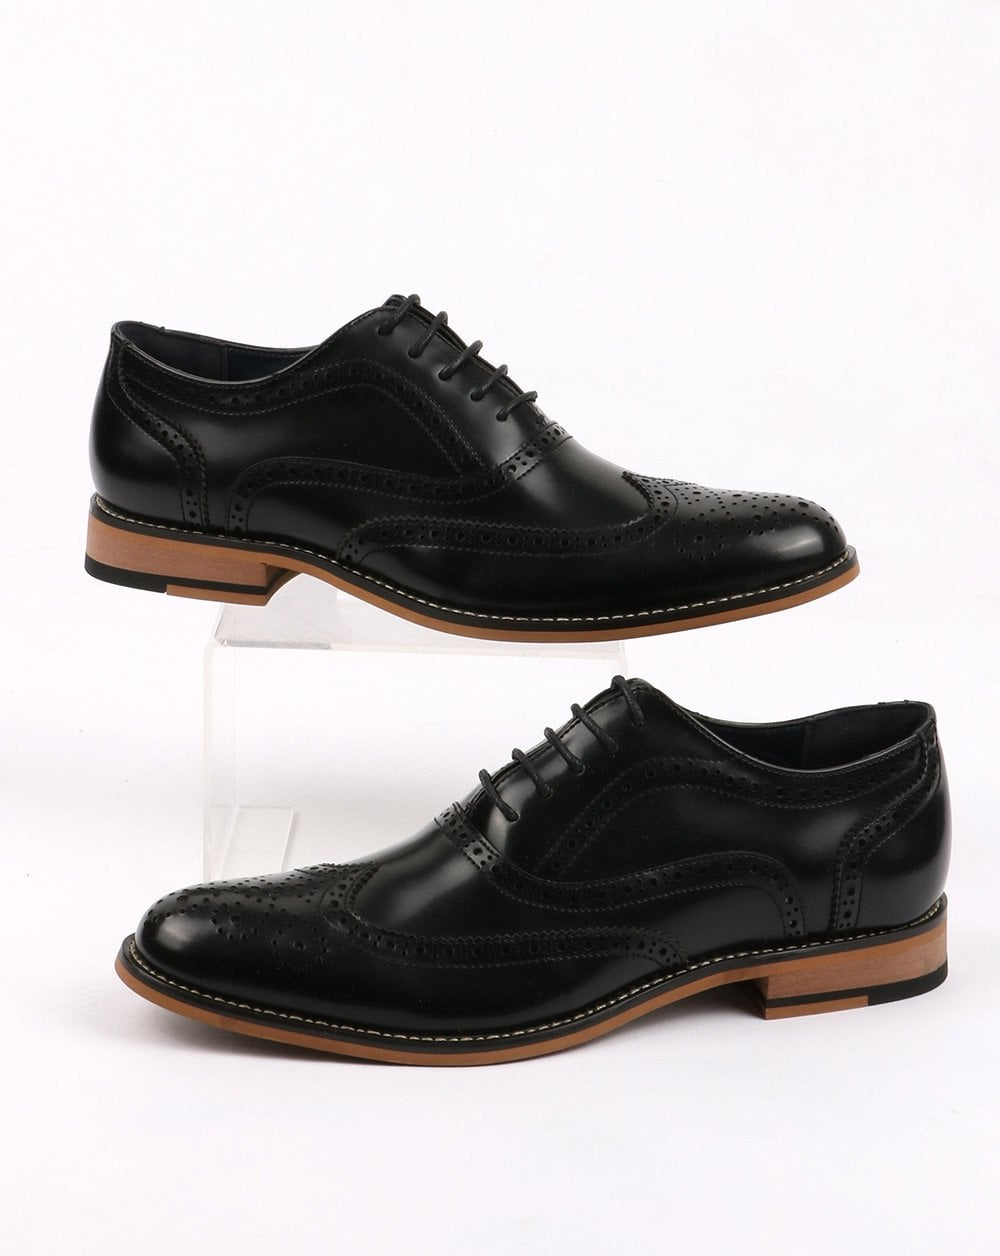 lace up shoe, leather | 80s casual classics